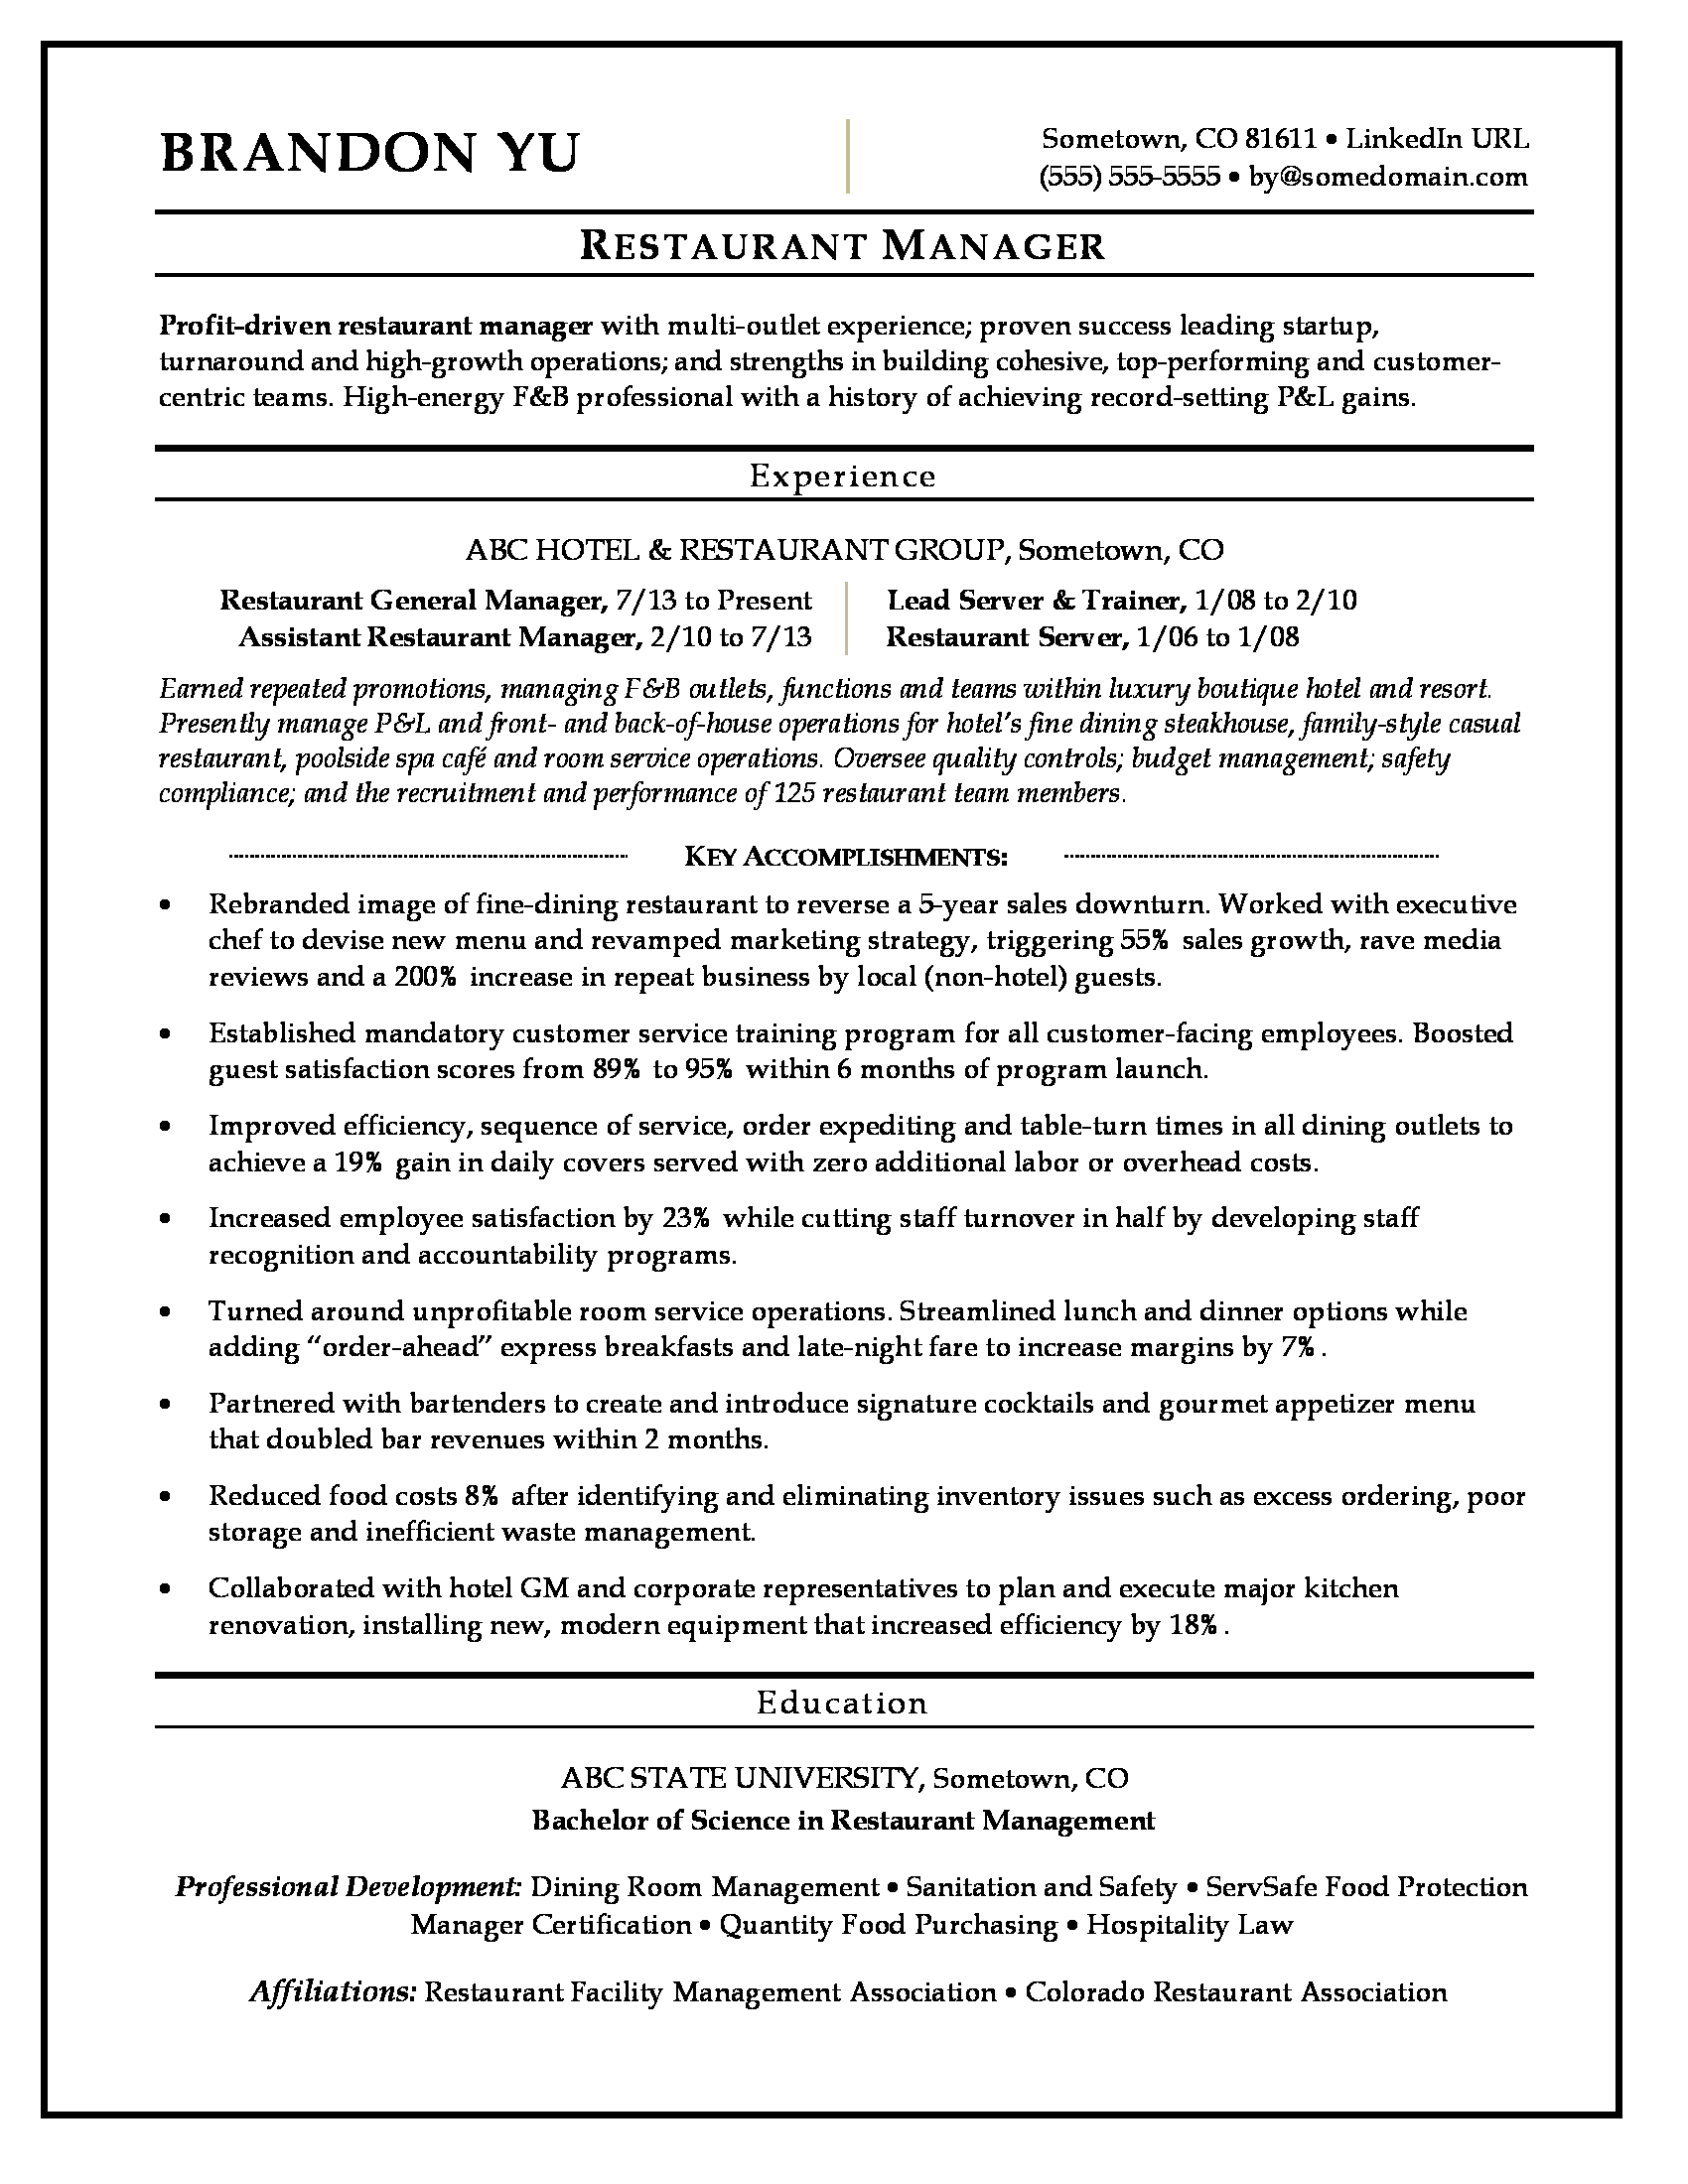 Philanthropy Resume Examples Restaurant Manager Resume Sample Monster